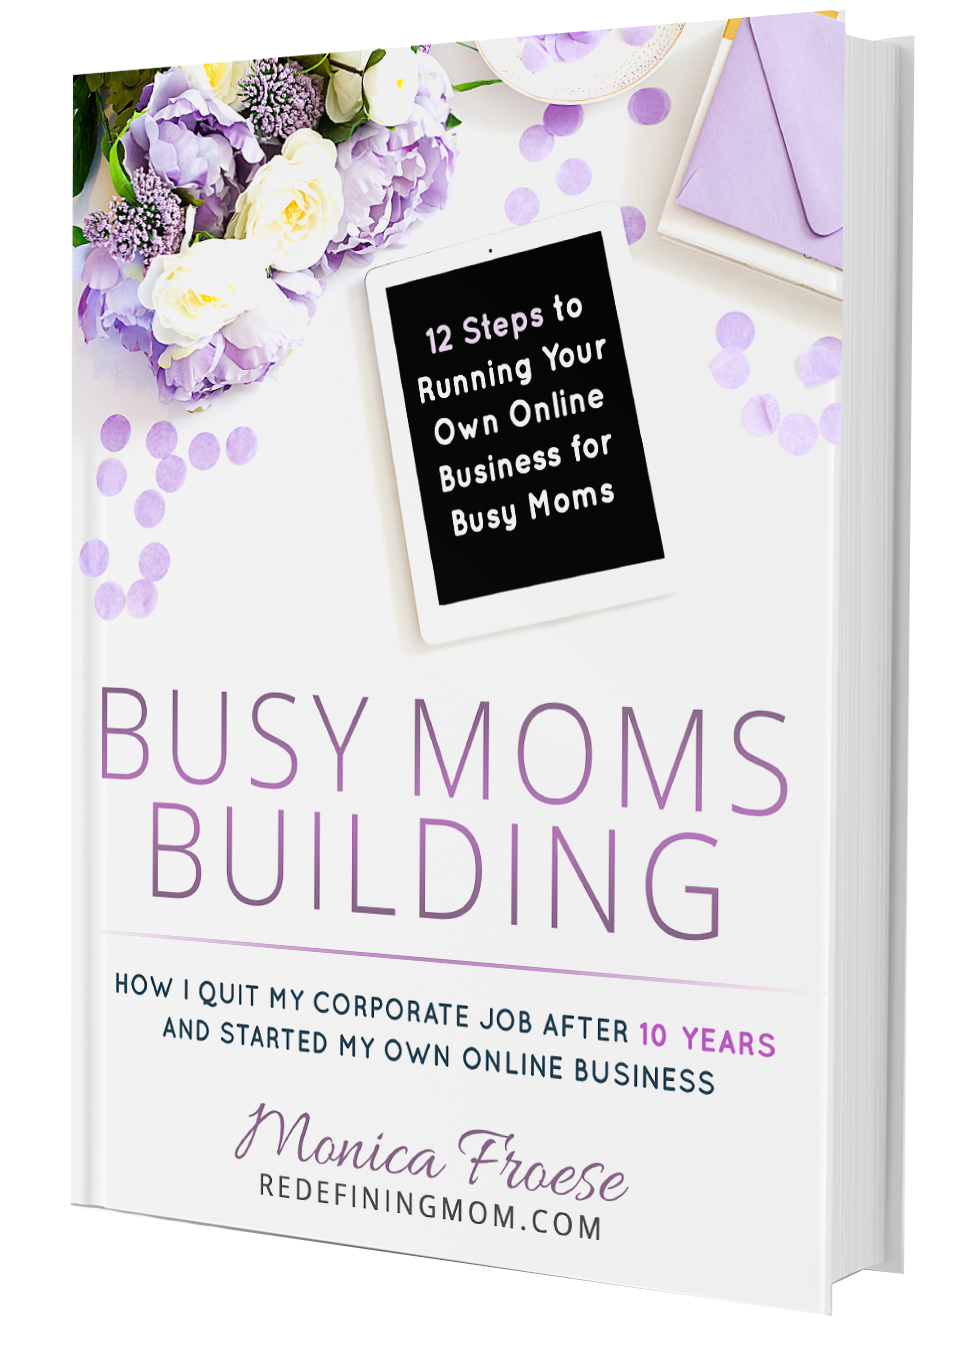 12 Steps to Running Your Own Online Business for Busy Moms